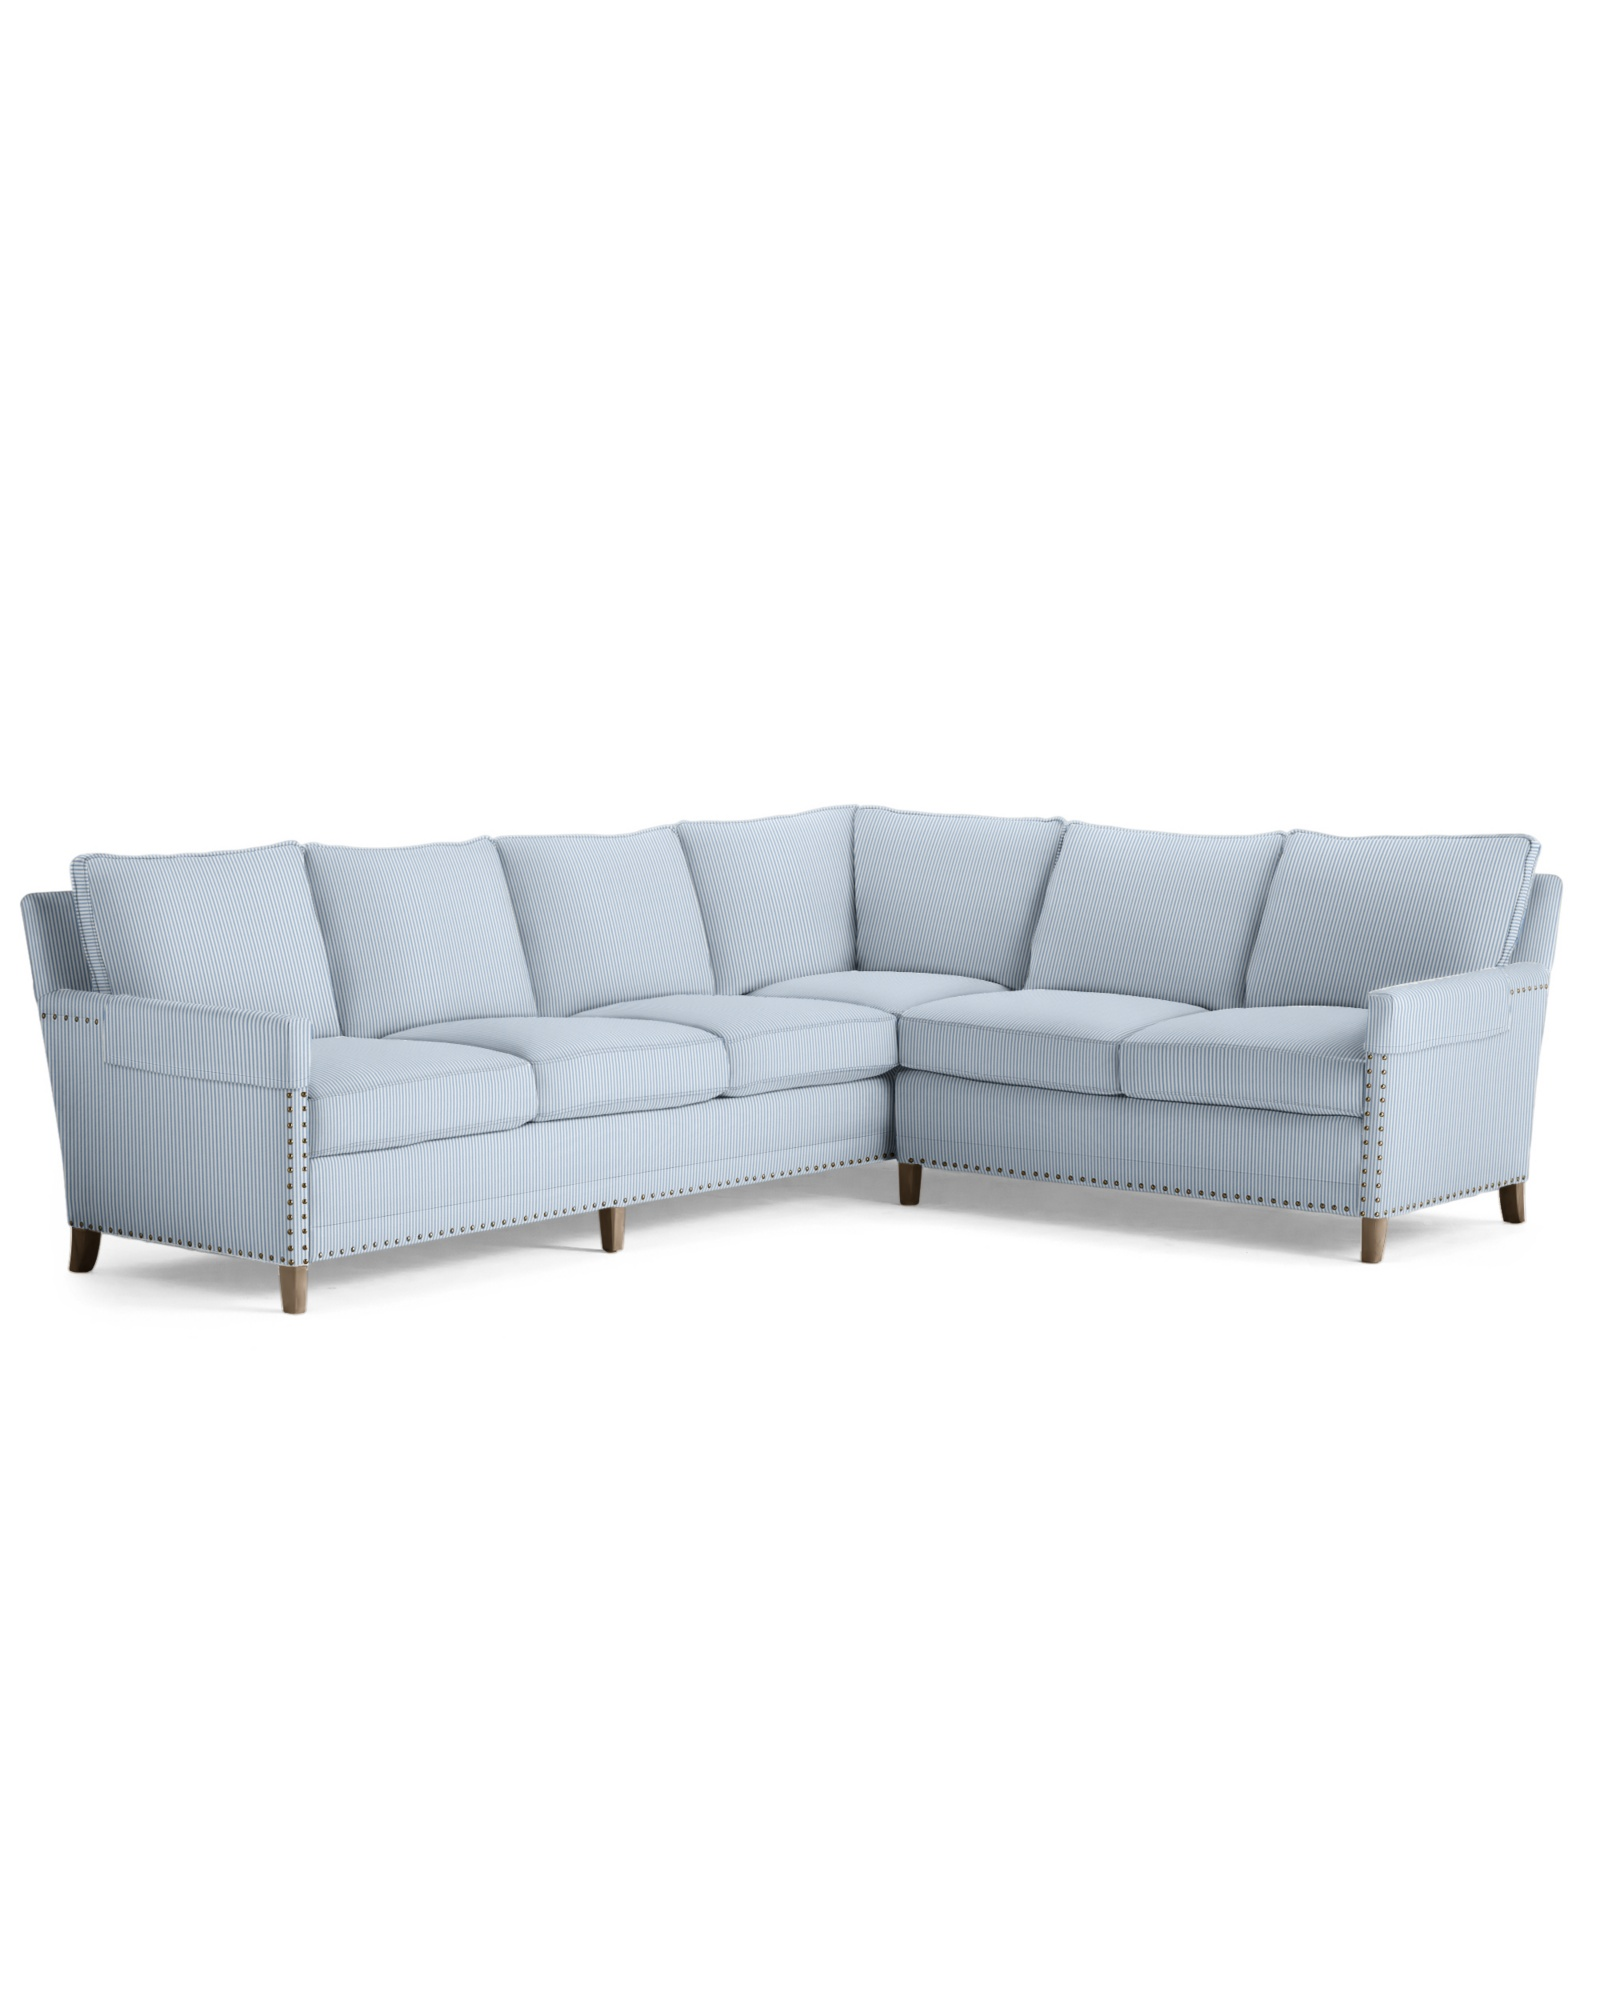 Spruce Street L-Sectional - Right Facing - Perennials Pinstripe French Blue,